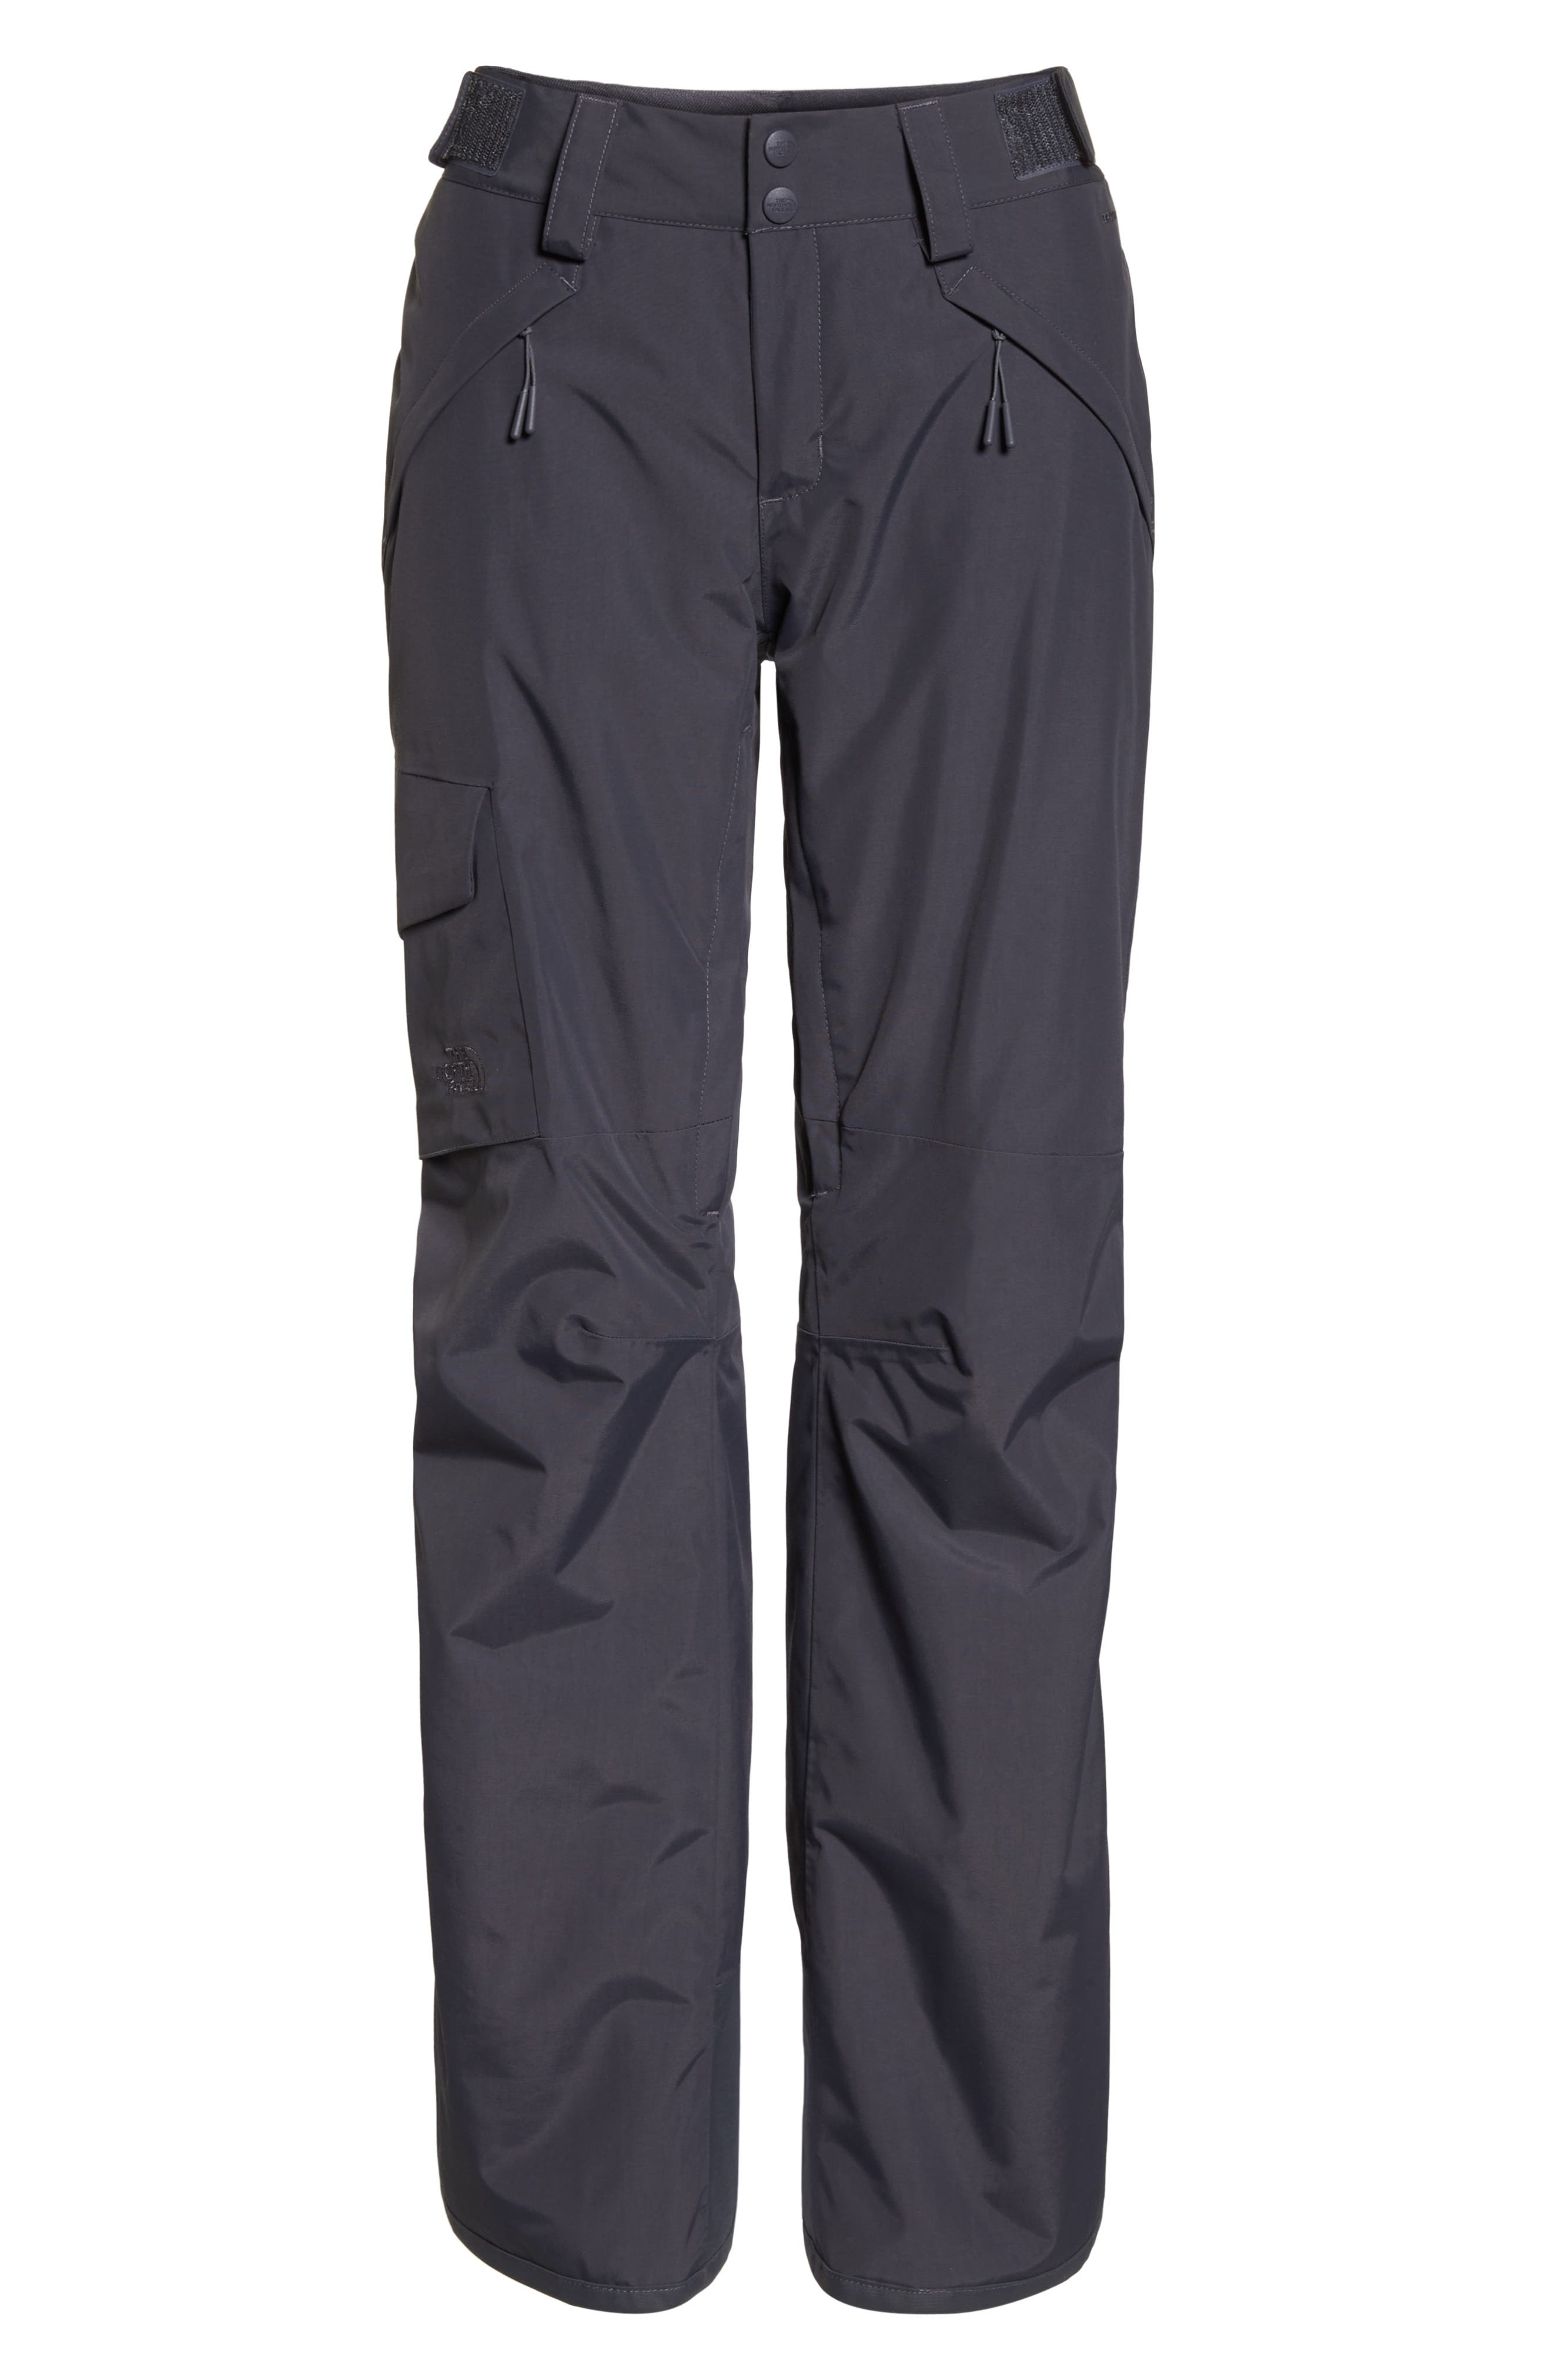 Freedom Waterproof Insulated Pants,                             Alternate thumbnail 7, color,                             PERISCOPE GREY